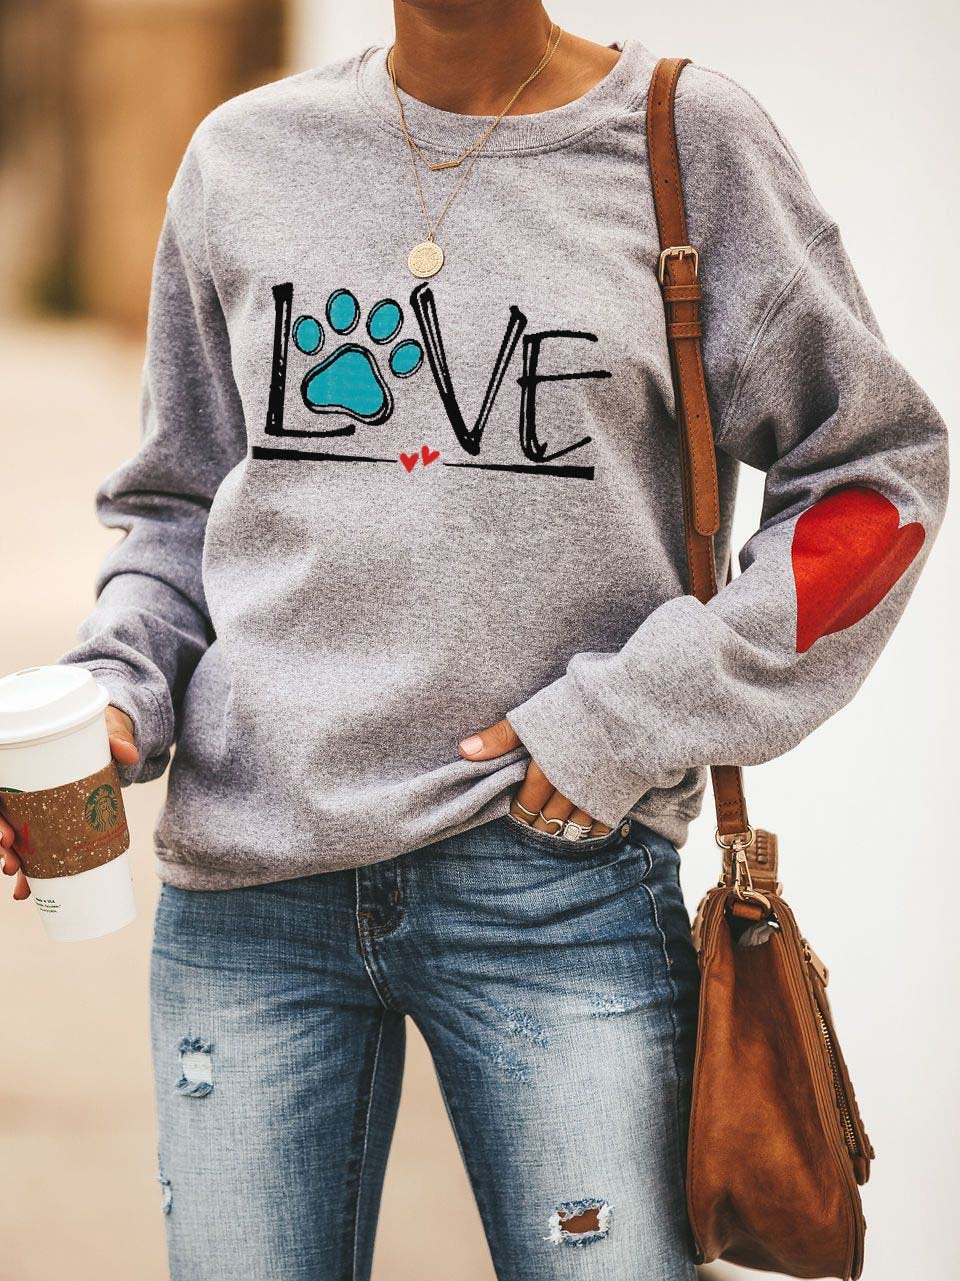 Dog Love Heart Design Sweatshirt